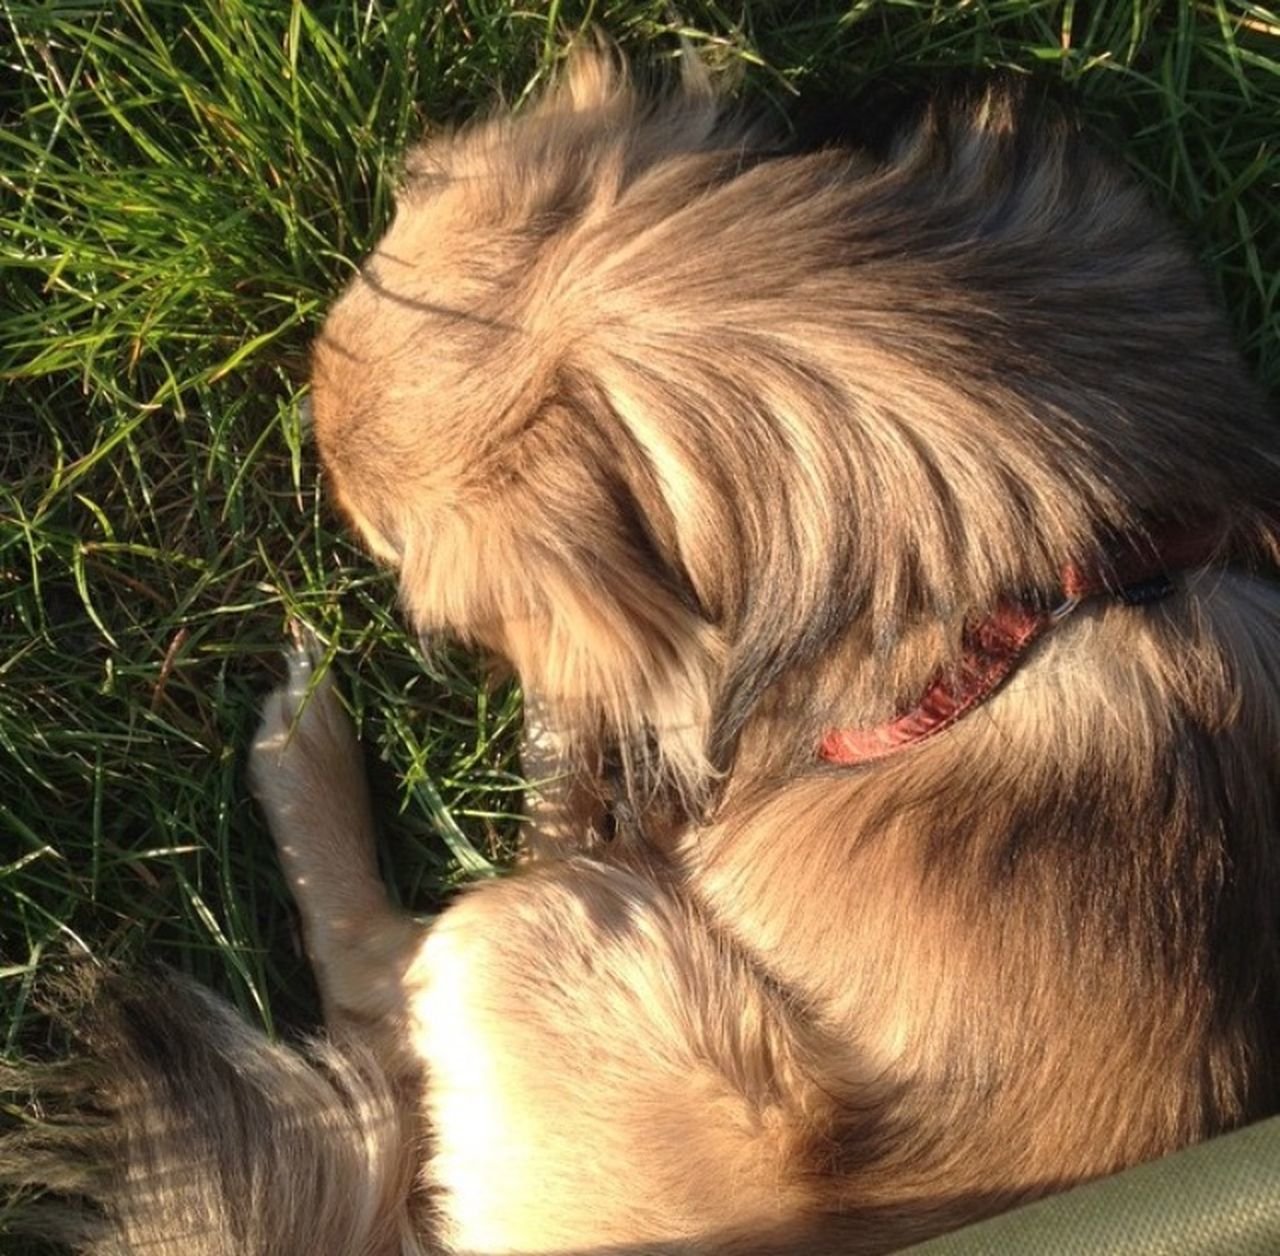 pets, dog, domestic animals, animal themes, one animal, mammal, animal hair, no people, high angle view, grass, day, close-up, outdoors, nature